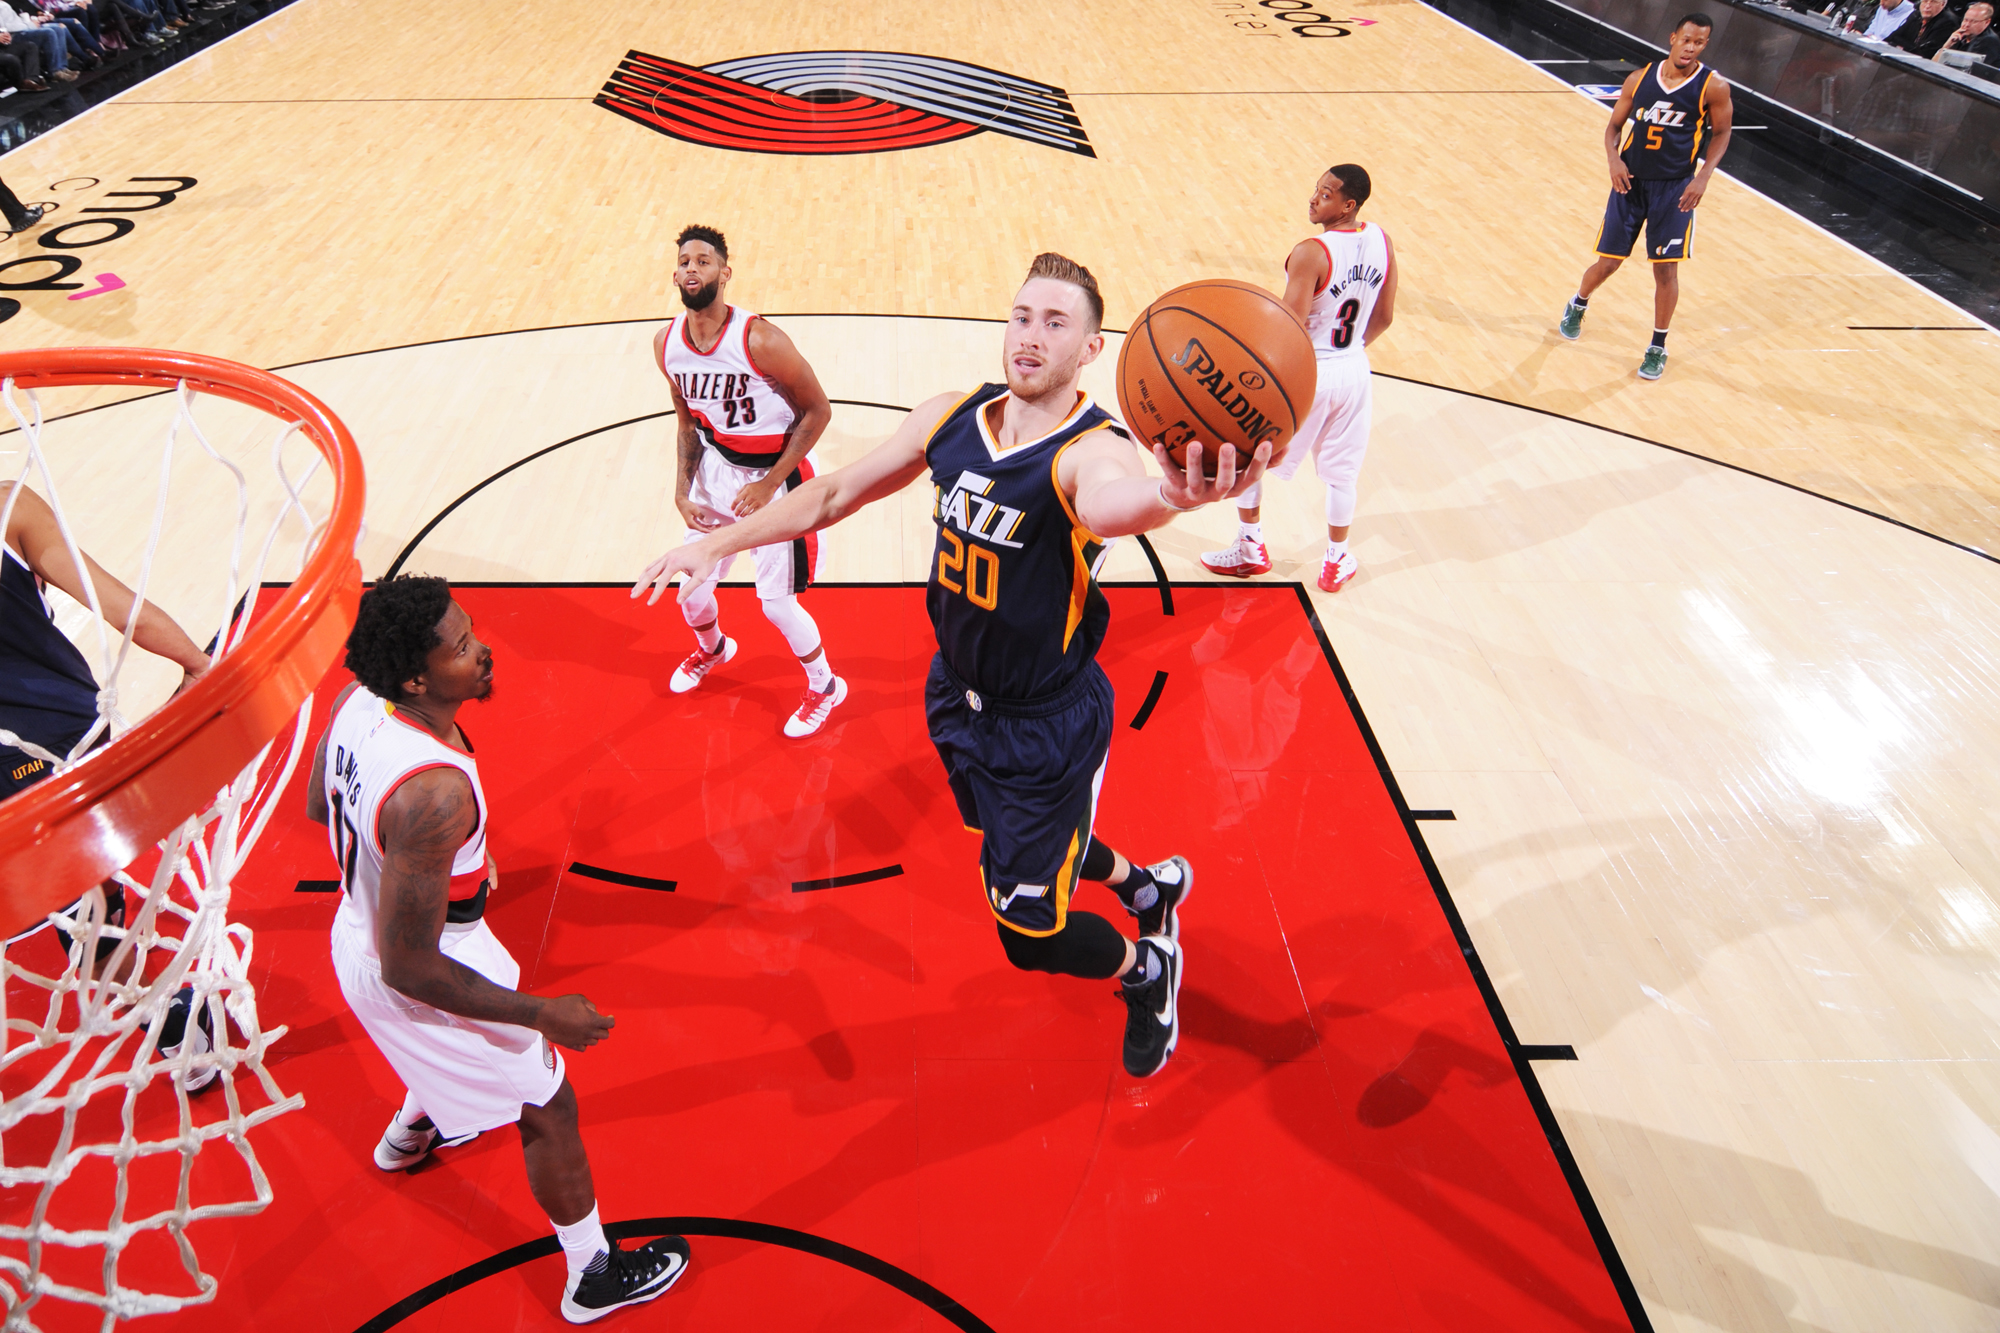 Gordon Hayward #20 of the Utah Jazz shoots the ball against the Portland Trail Blazers during a preseason game on October 3, 2016 at the Moda Center in Portland, Oregon.